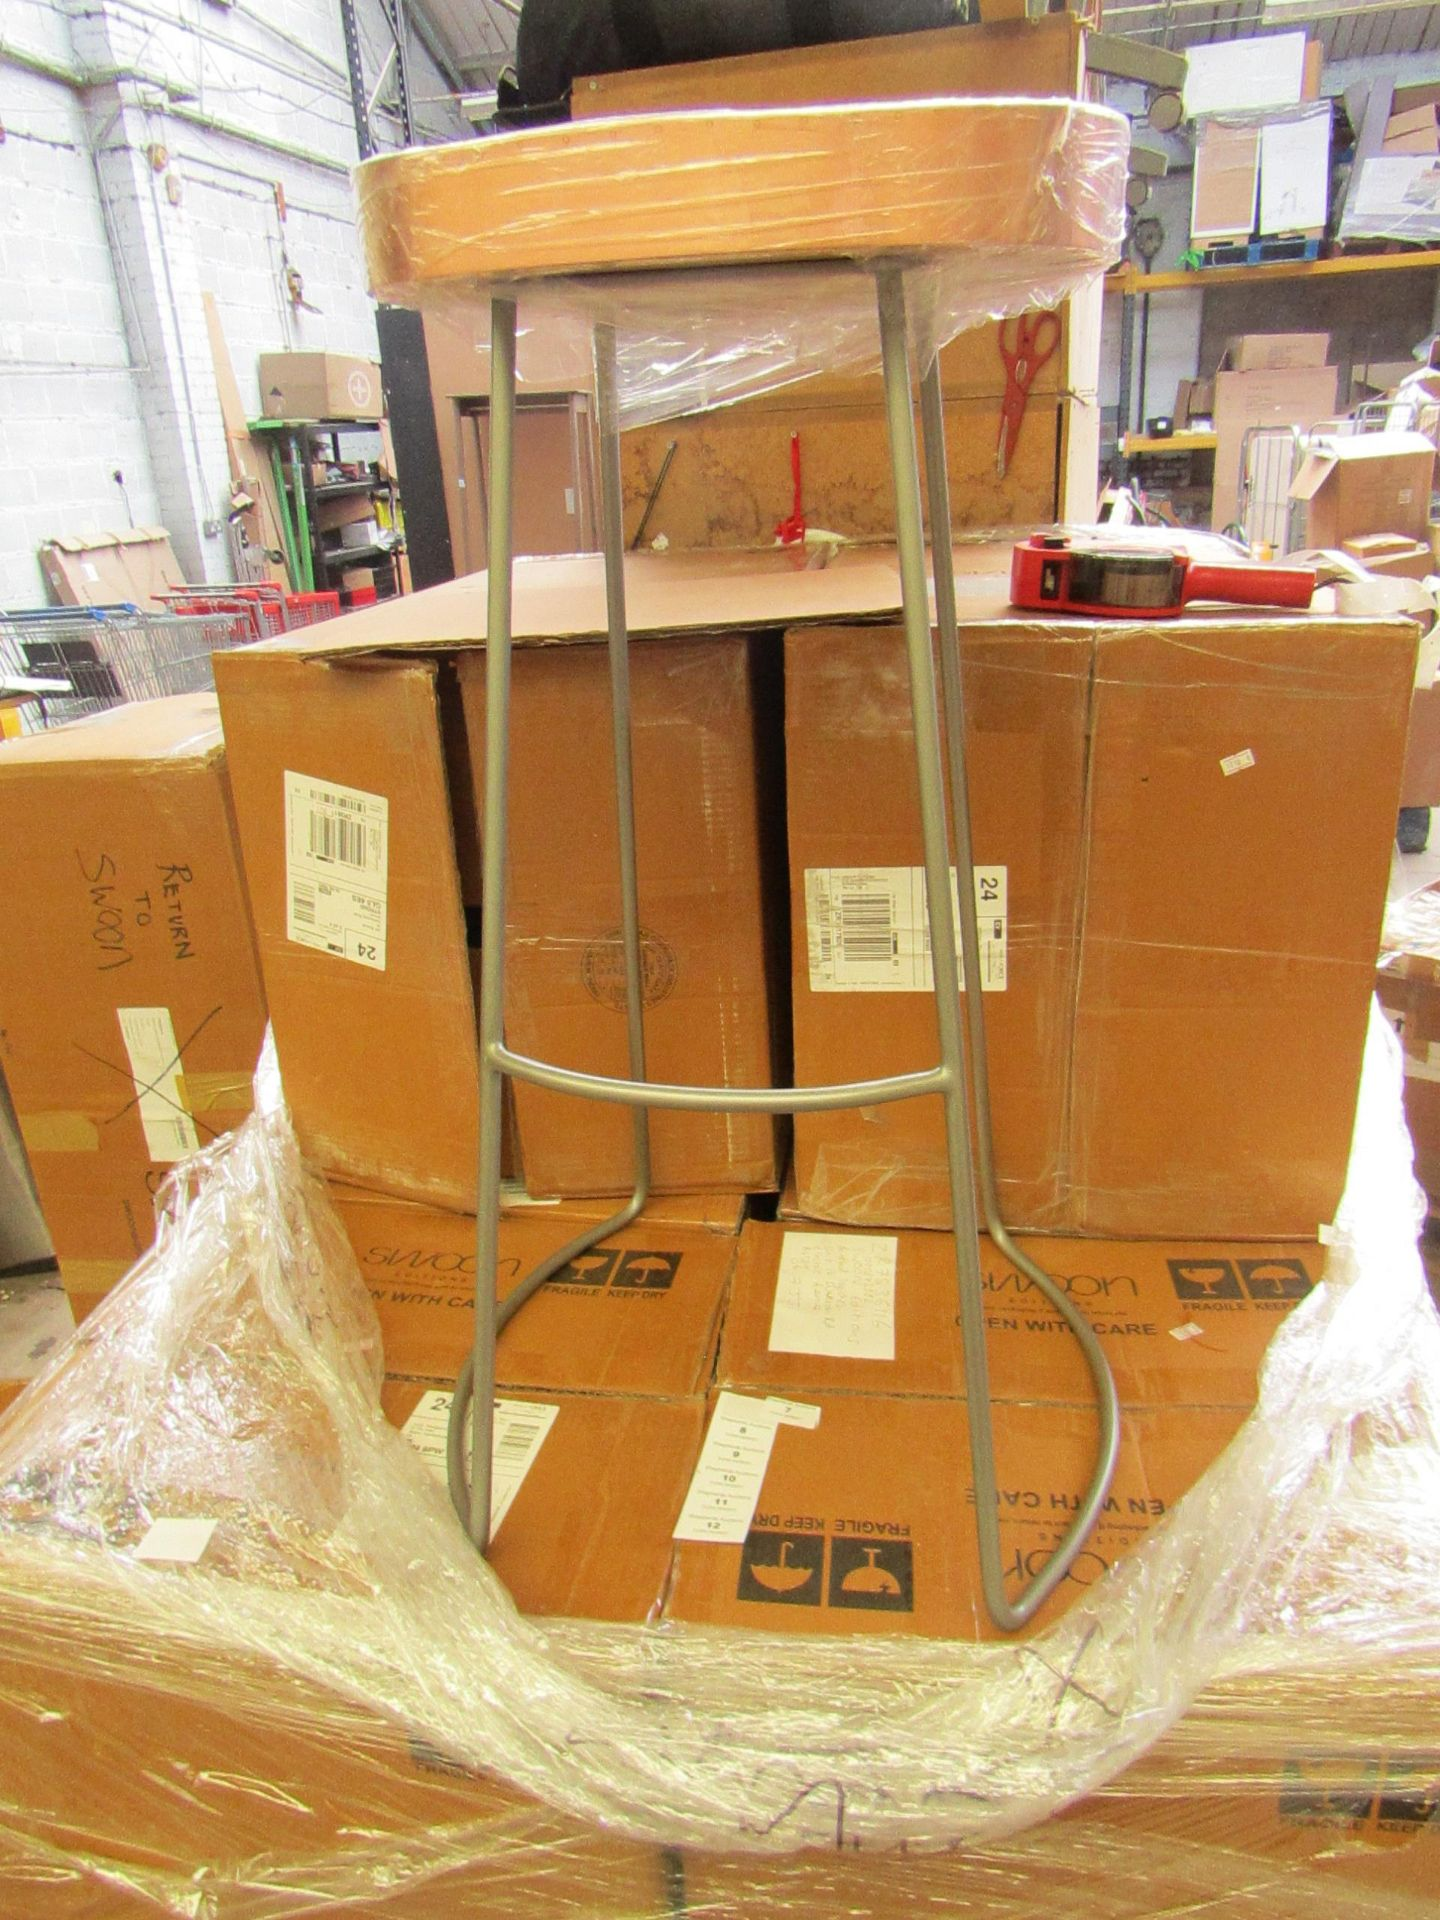   1x   SWOON.COM WELLES WARM COPPER BAR STOOL   NO VISIBLE DAMAGE LOOK LIKE NEW & BOXED   RRP £119  